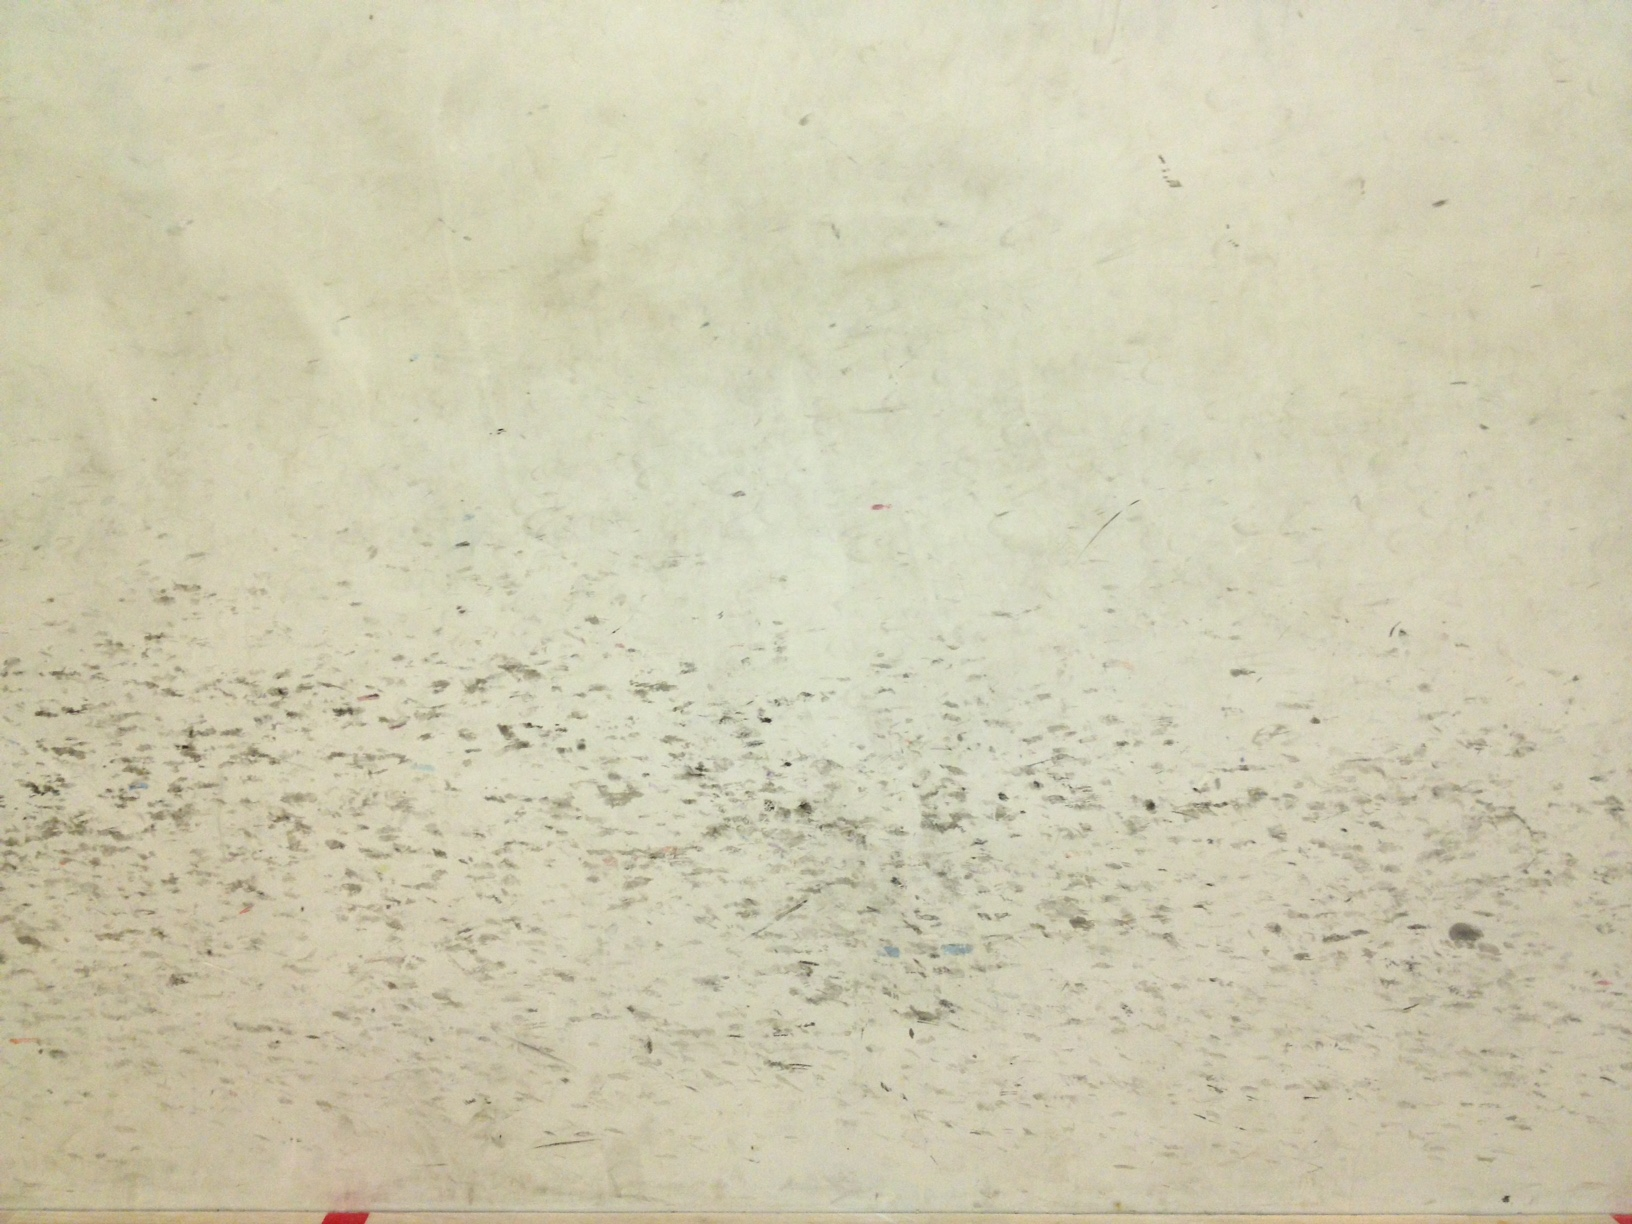 Squash court wall covered in ball markings